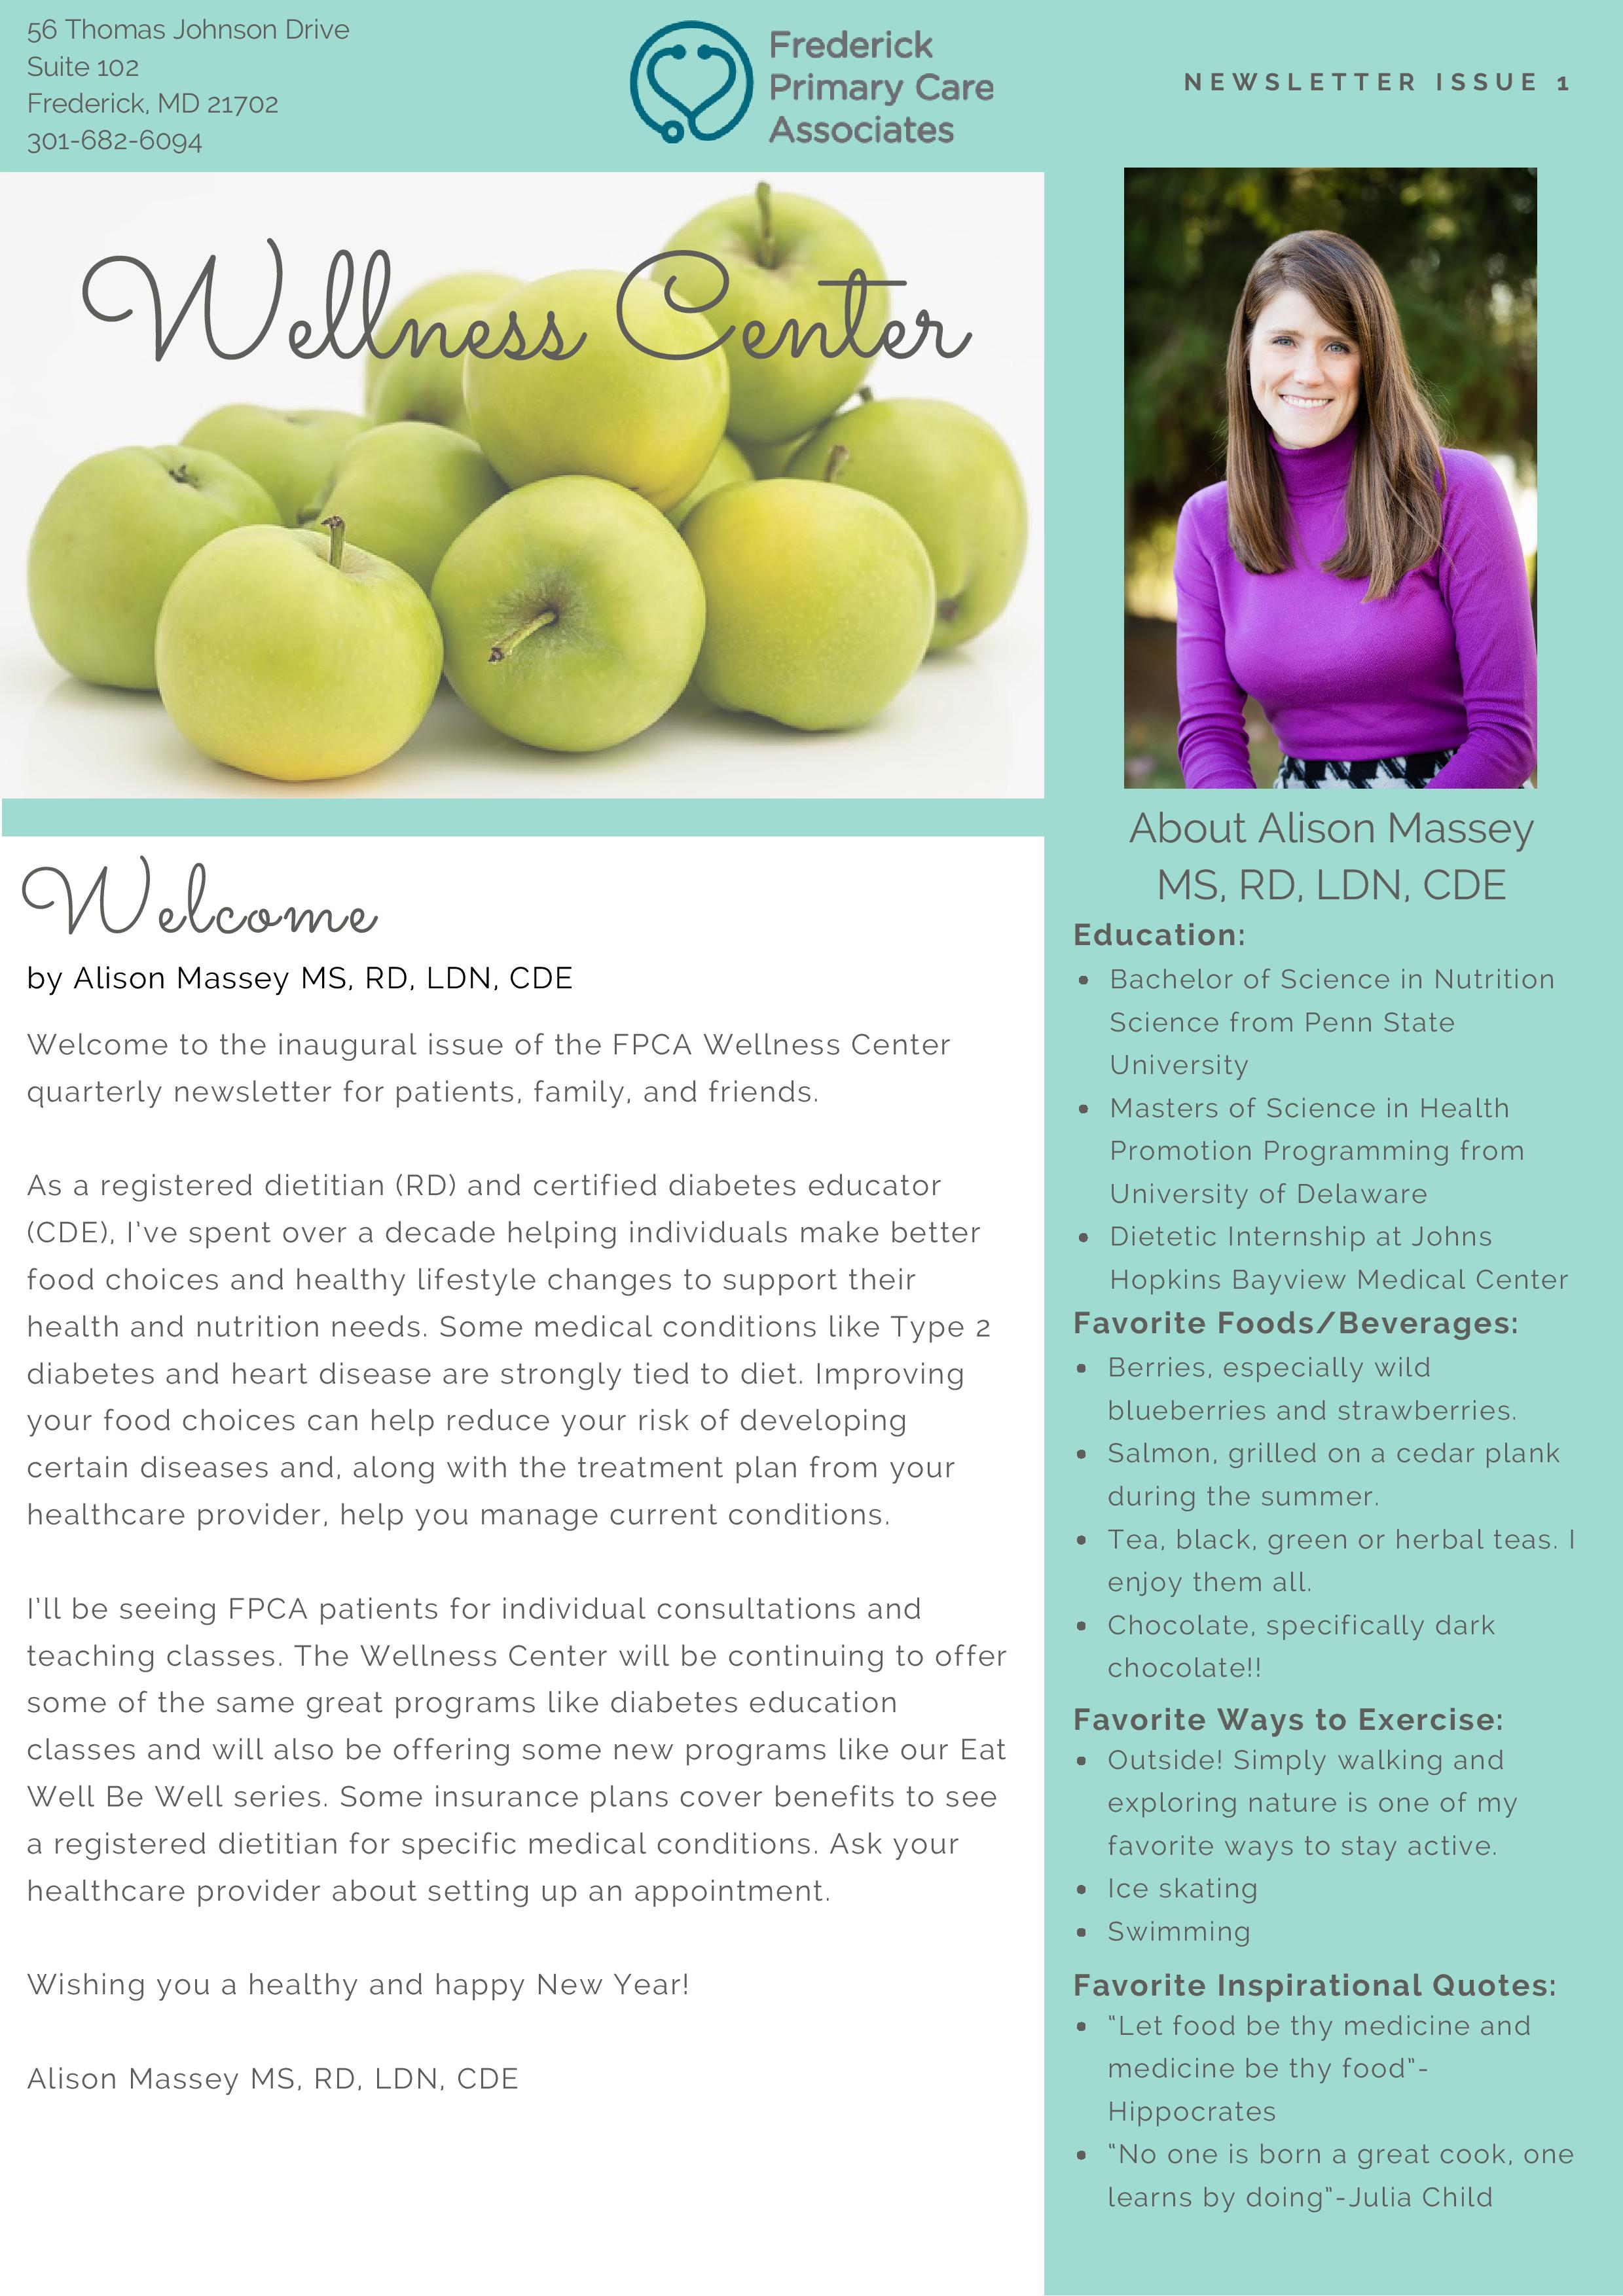 Wellness Newsletter 1 Page 1 - Frederick Primary Care ...